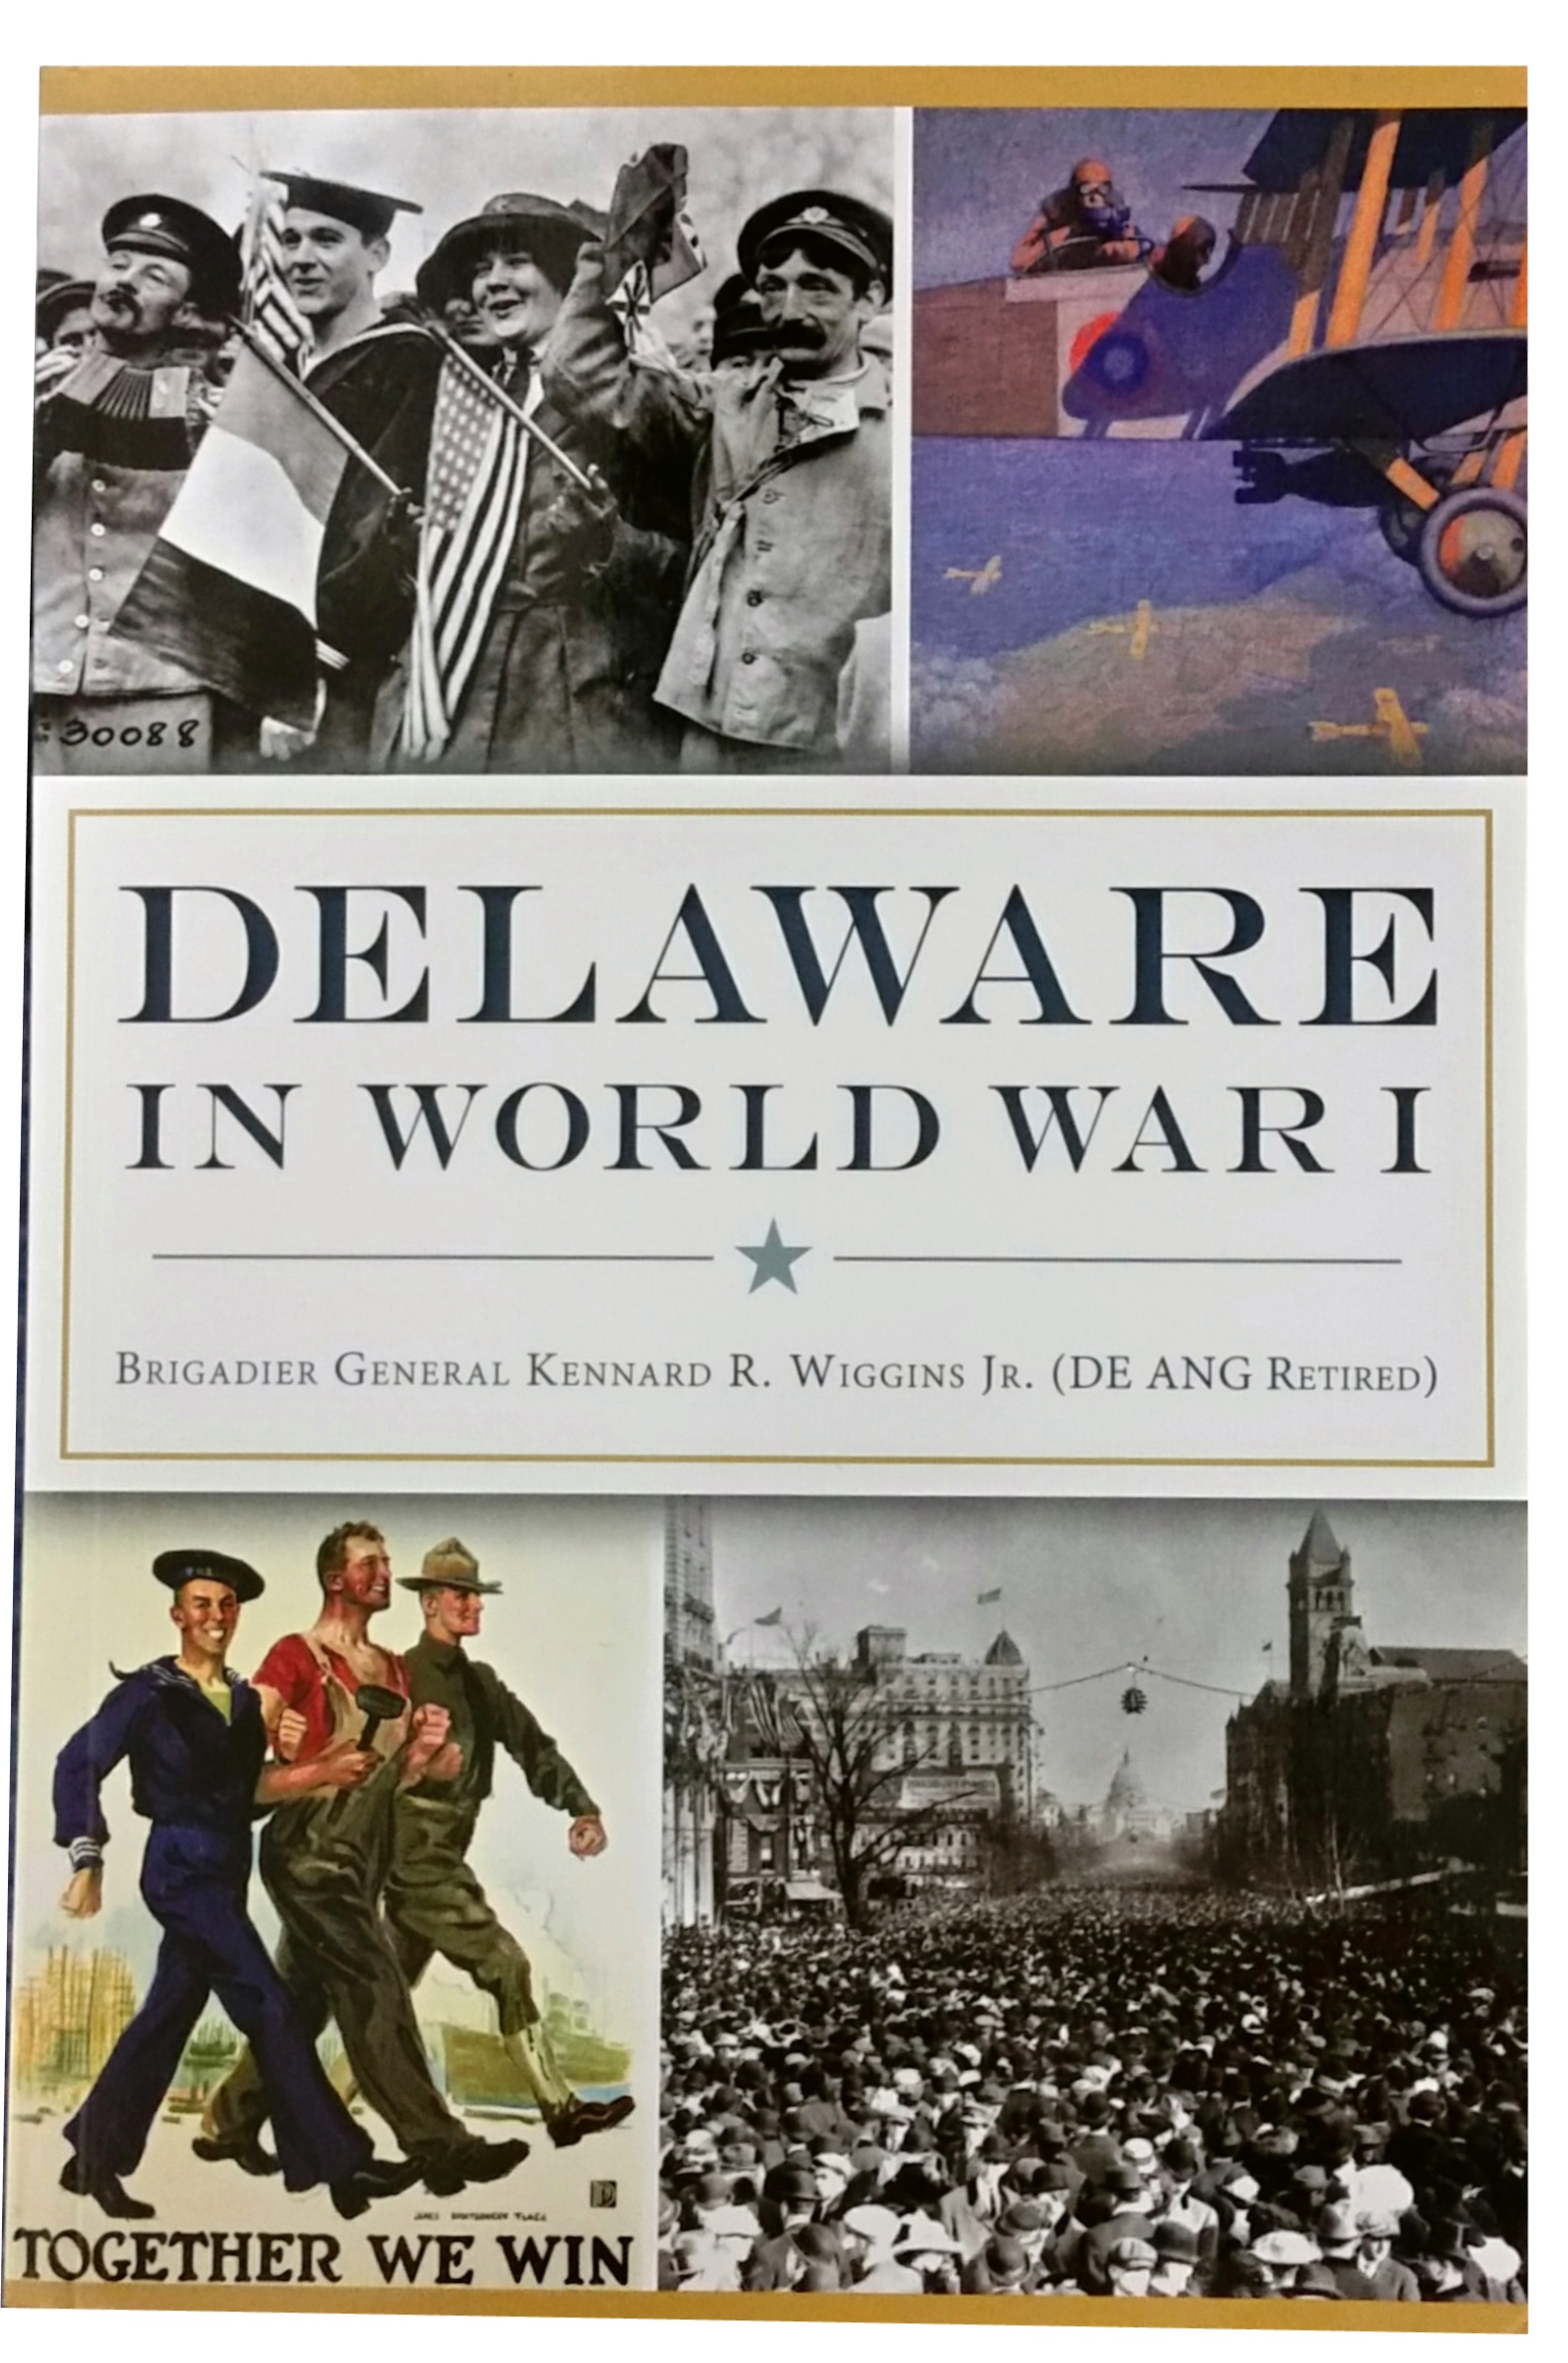 Delaware in World War I, by Brigadier General Kennard R. Wiggins Jr., First Edition 2015, 159 pp, PAPERBACK. Prices reflect the cost of the book PLUS S&H fee of $5.00